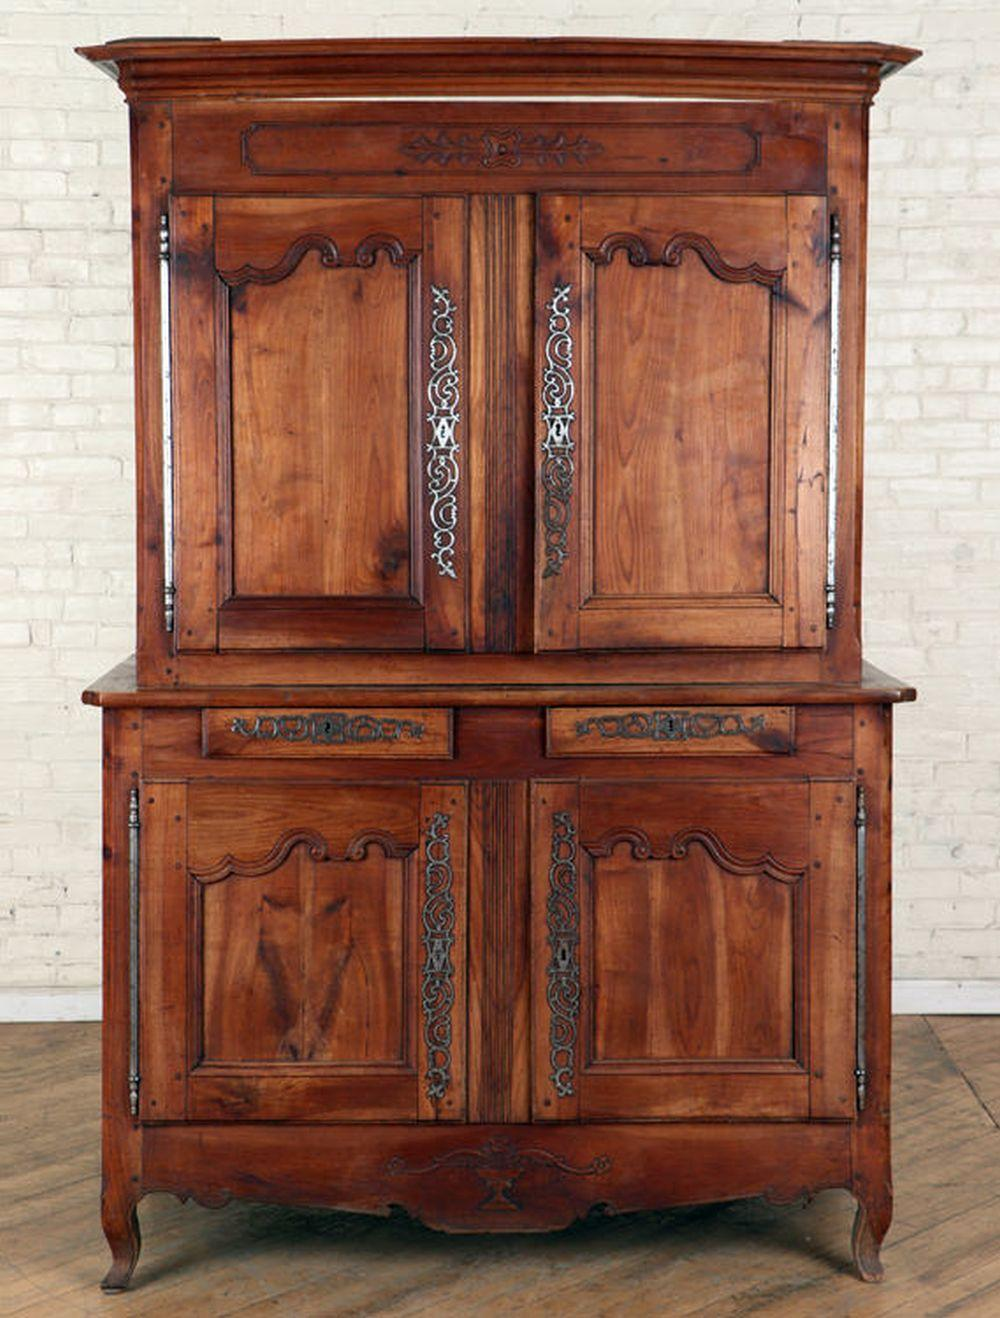 3-PART 18TH CENTURY FRENCH CHERRY CABINET